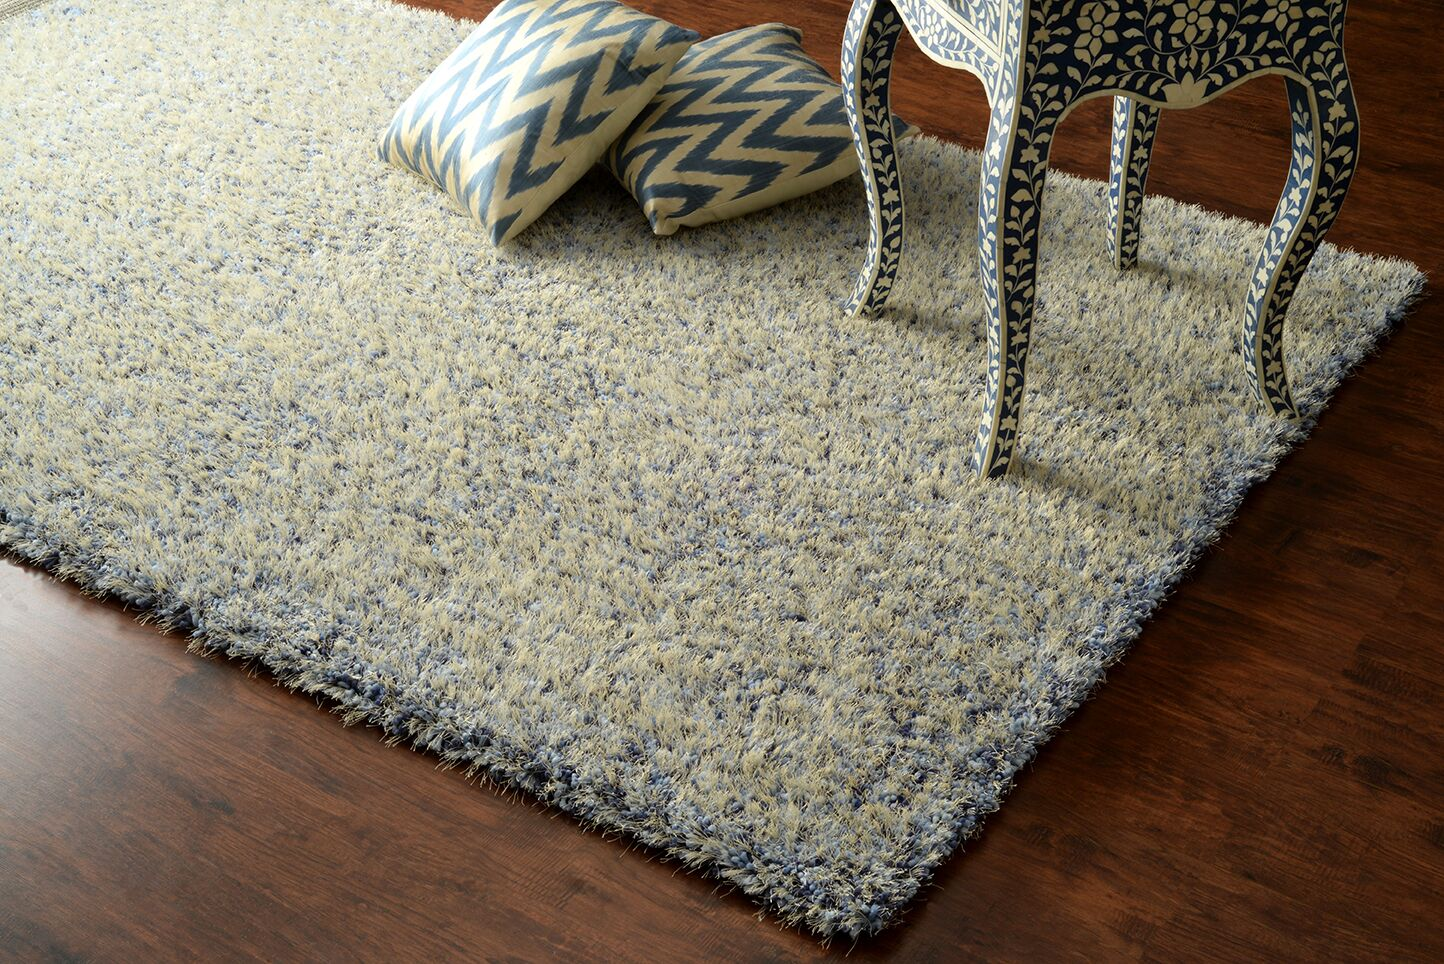 Glamour Hand-Tufted Blue Area Rug Rug Size: Rectangle 5' x 8'